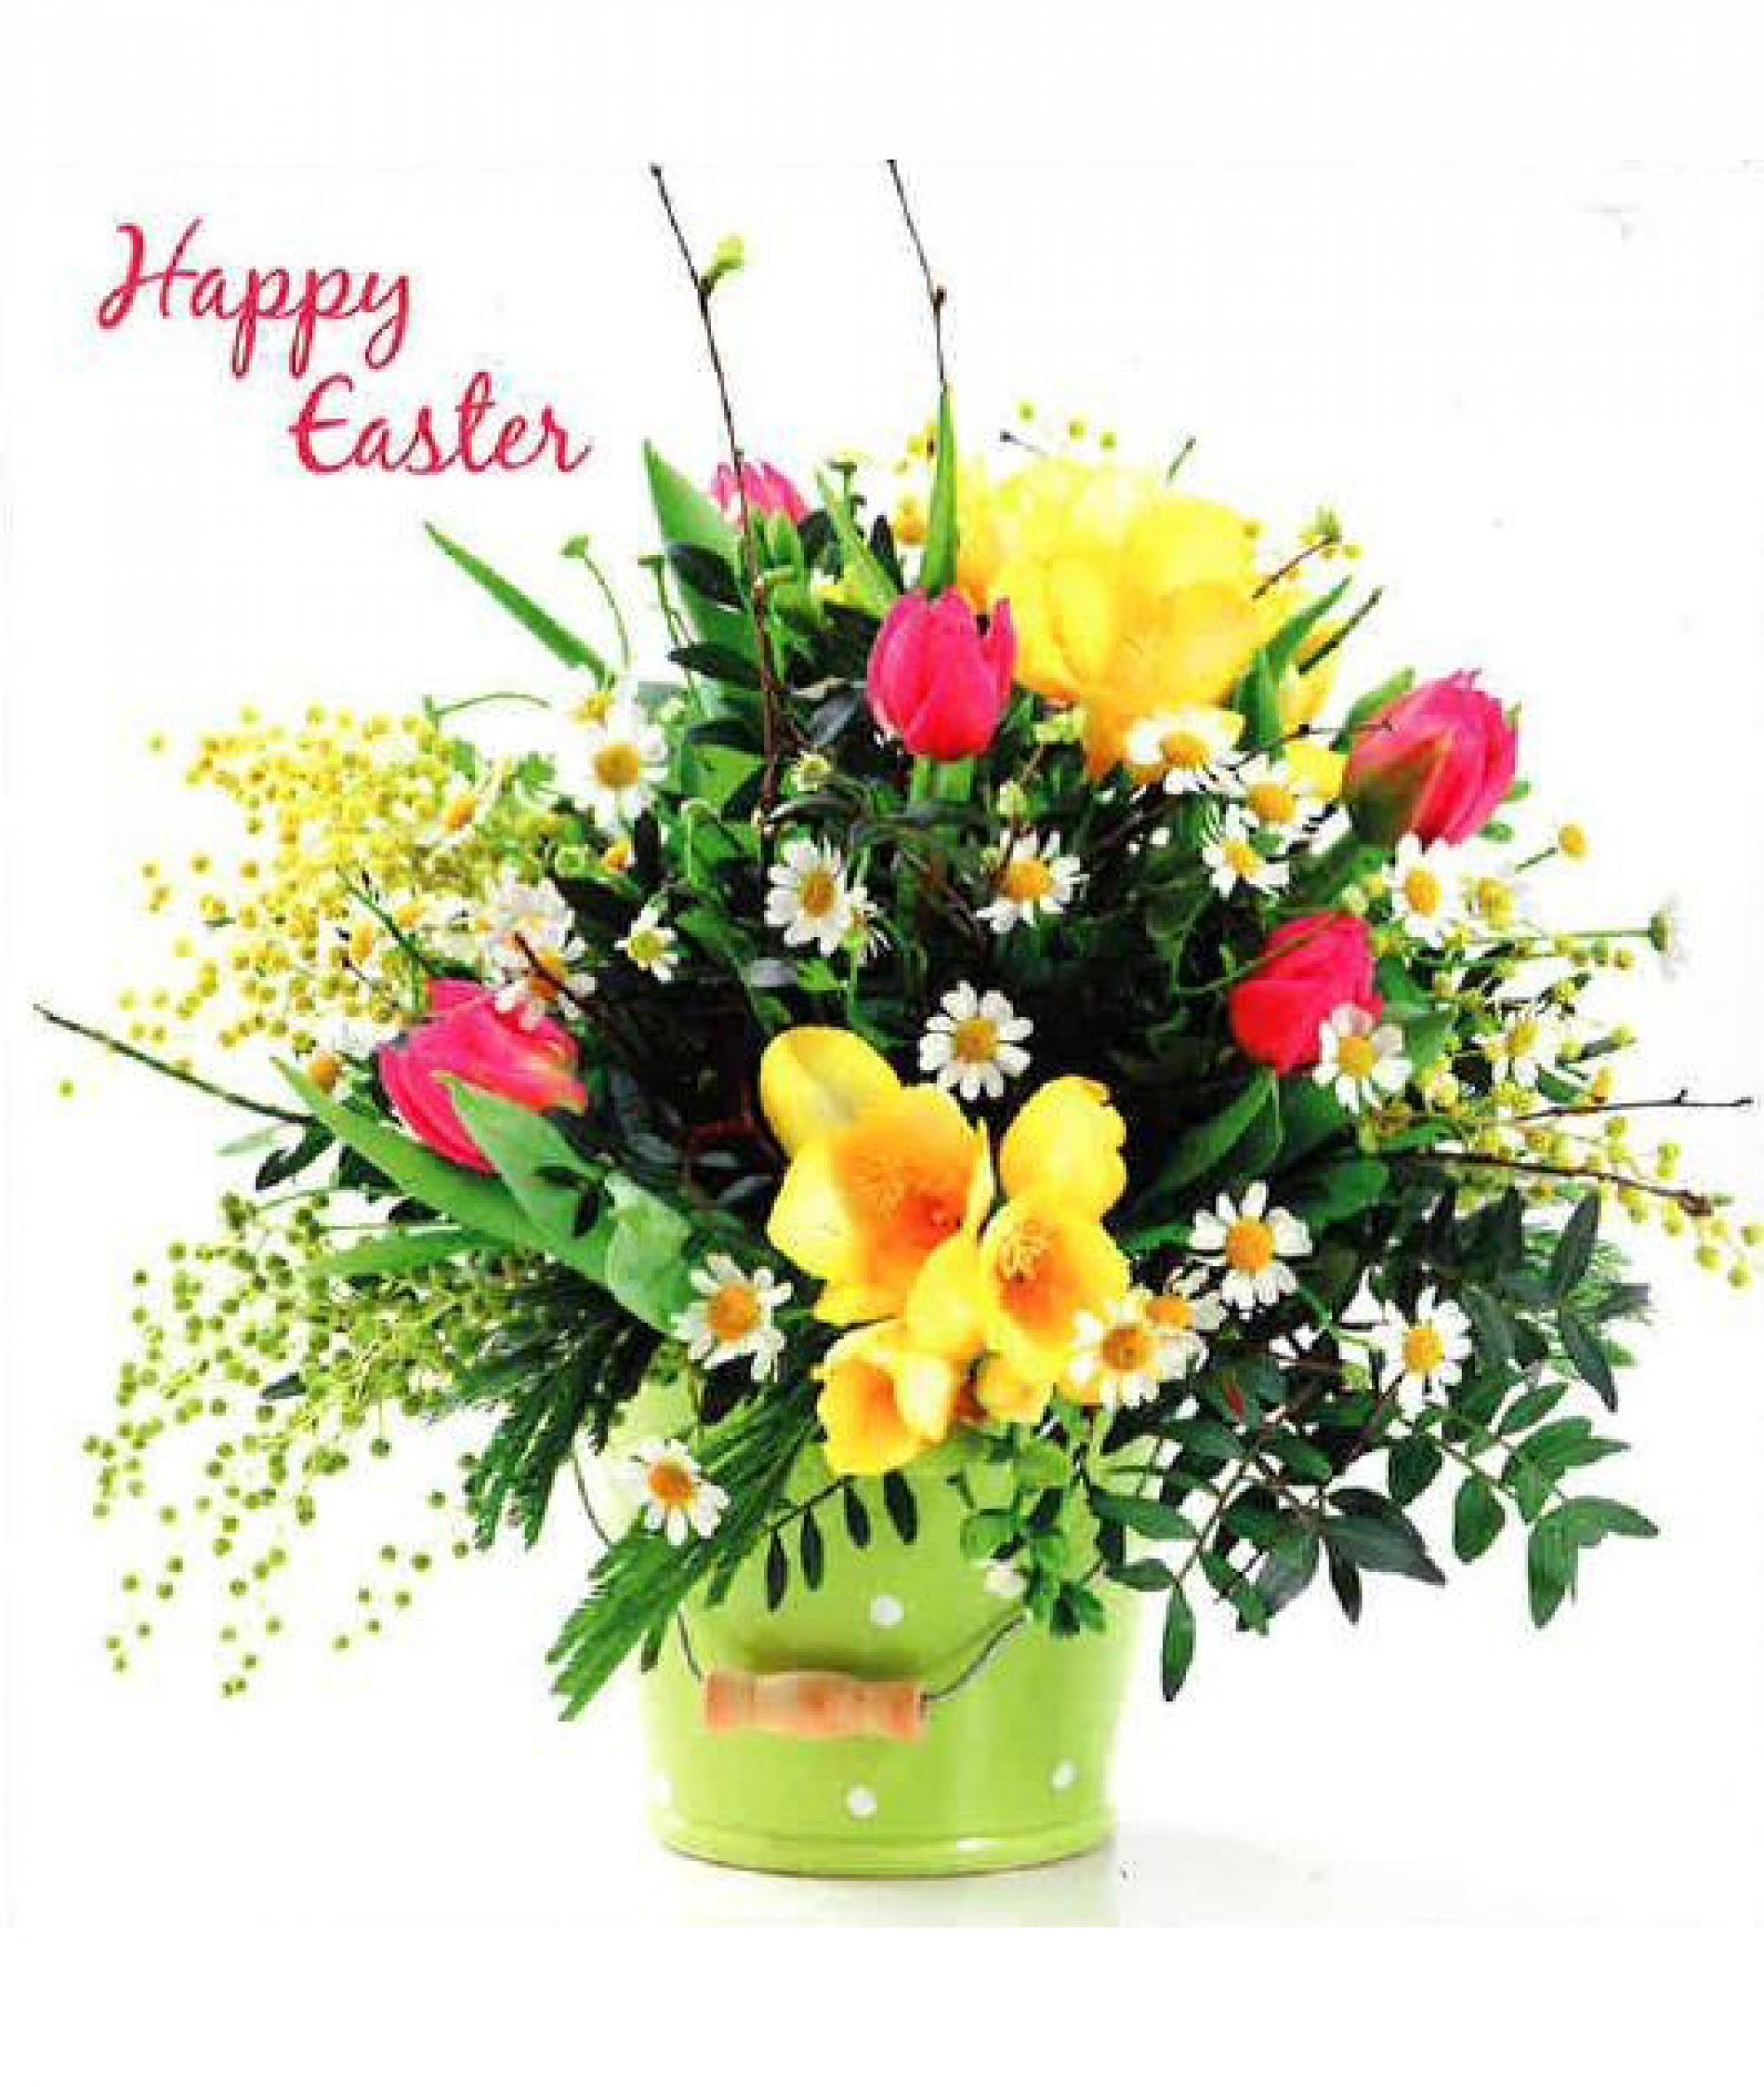 Easter Flowers Easter Cards Pack Of 6 Cancer Research